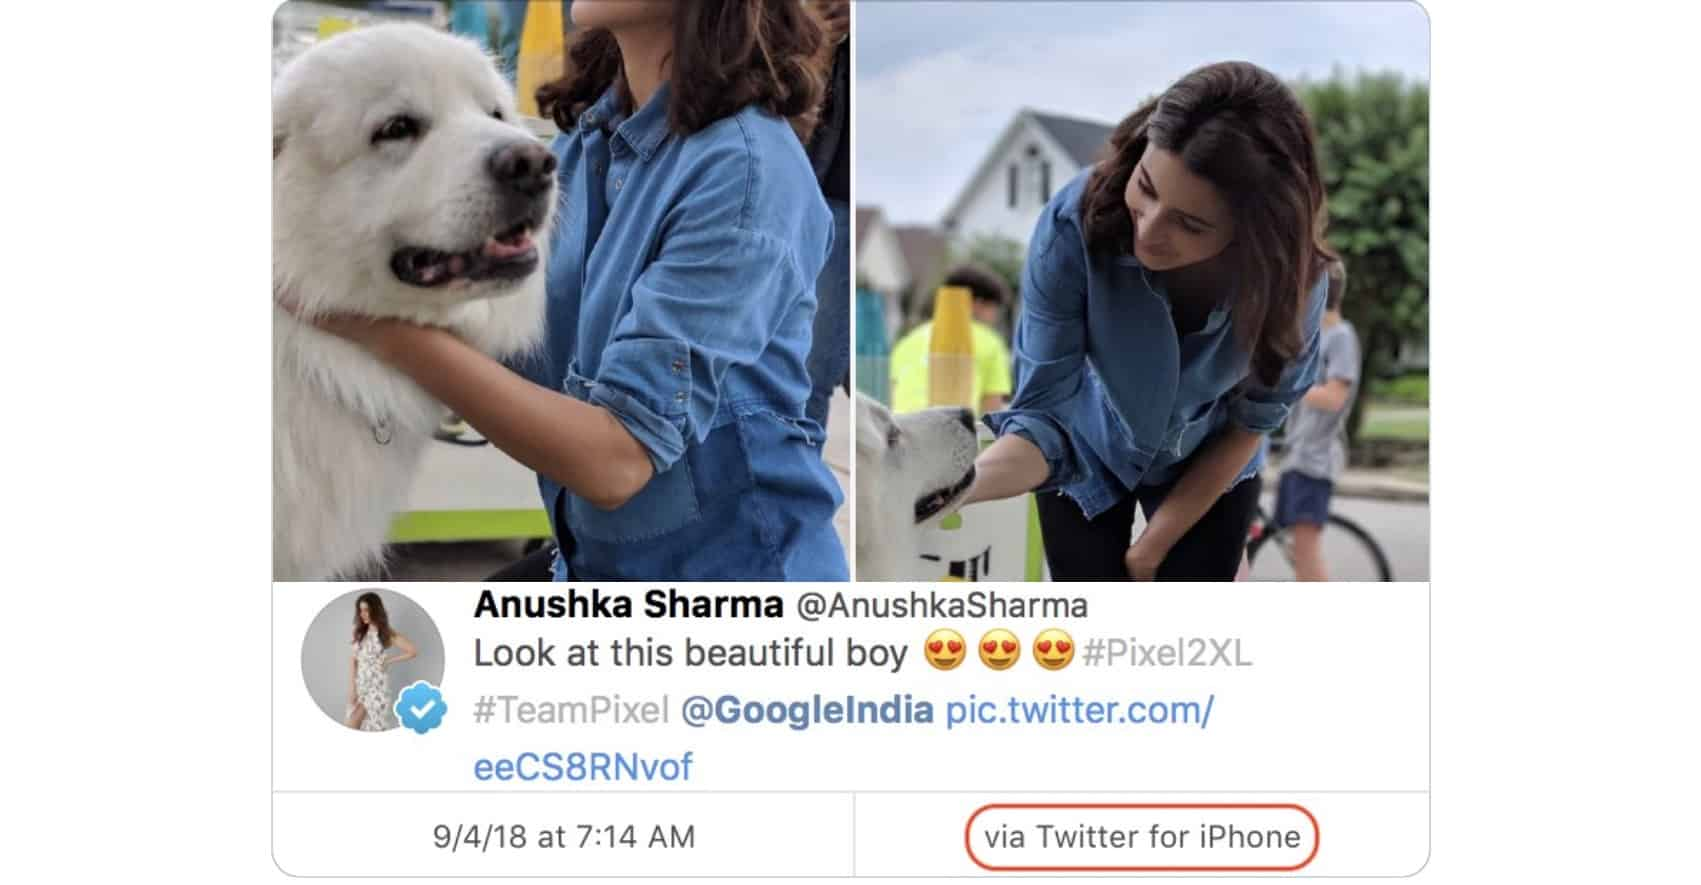 Another Celeb Caught Promoting Android from their iPhone